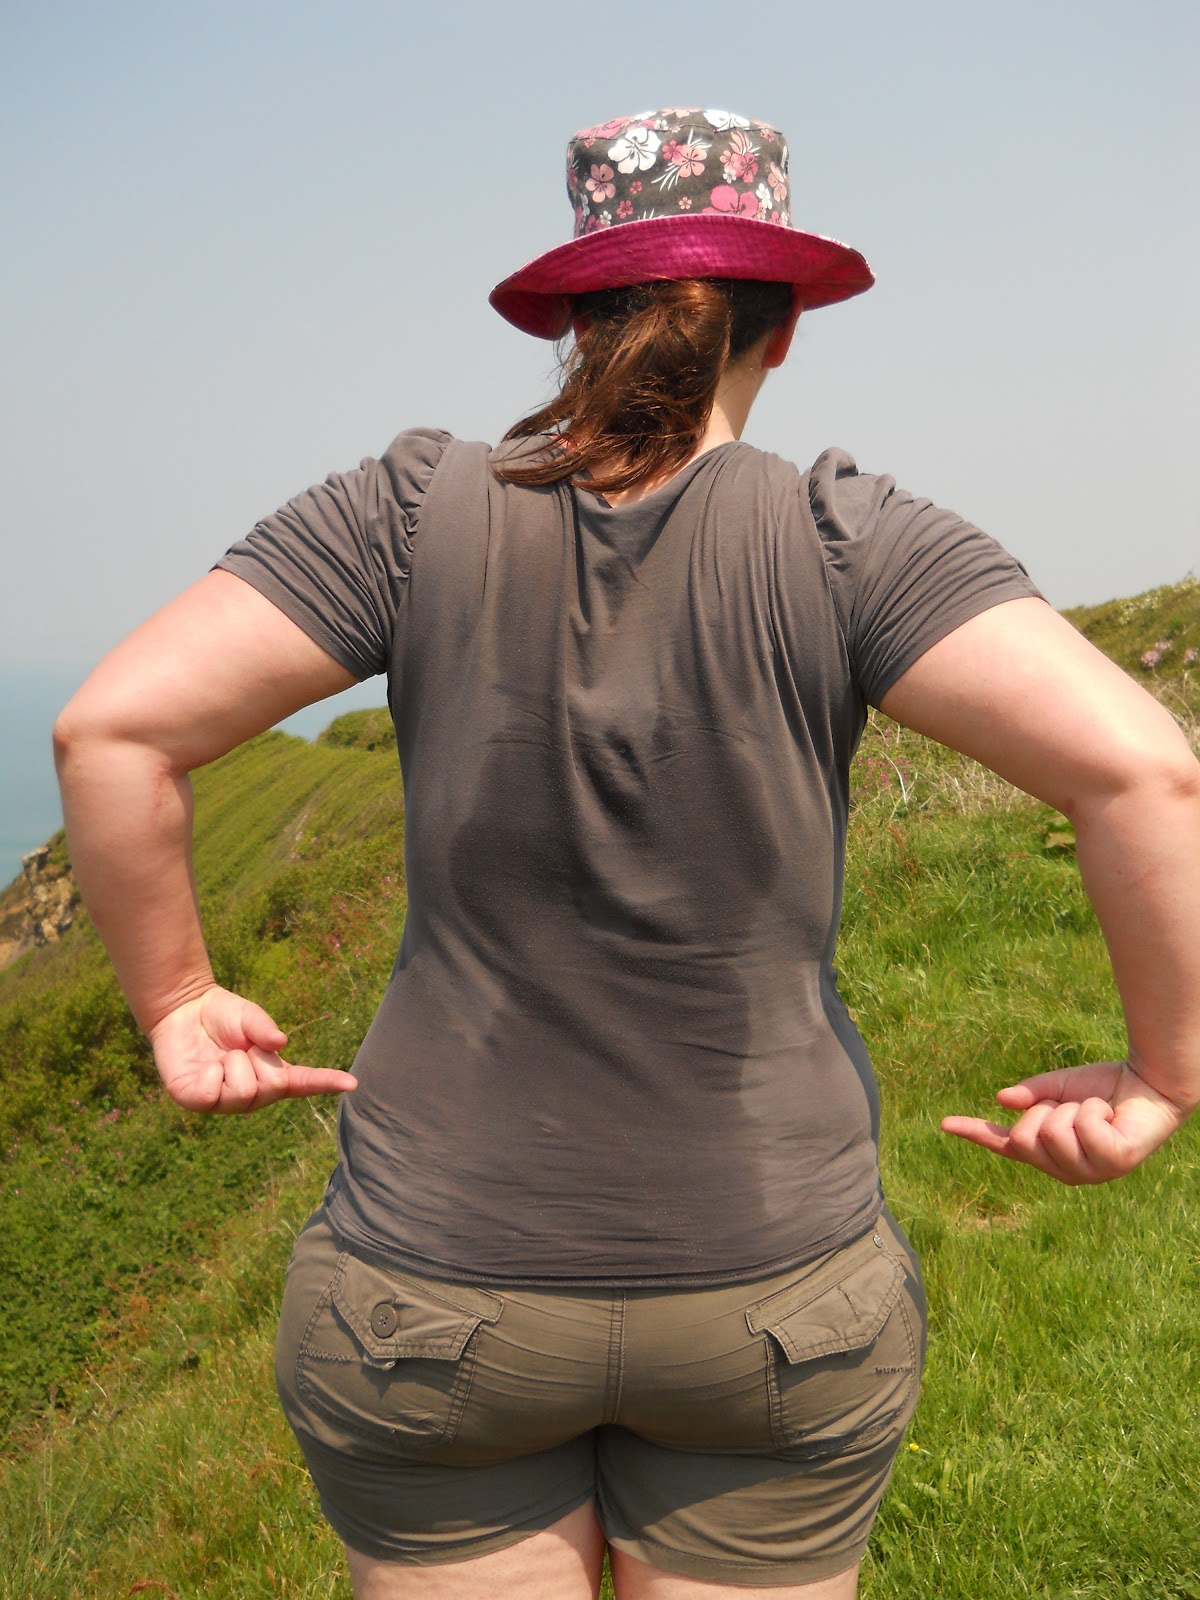 We Tried Lugging It All In Hiking Rucksacks From Bude To Boscastle  Miles But It Was Roasting Hot Even At Am And The Cliffs Are Some Of The Highest In